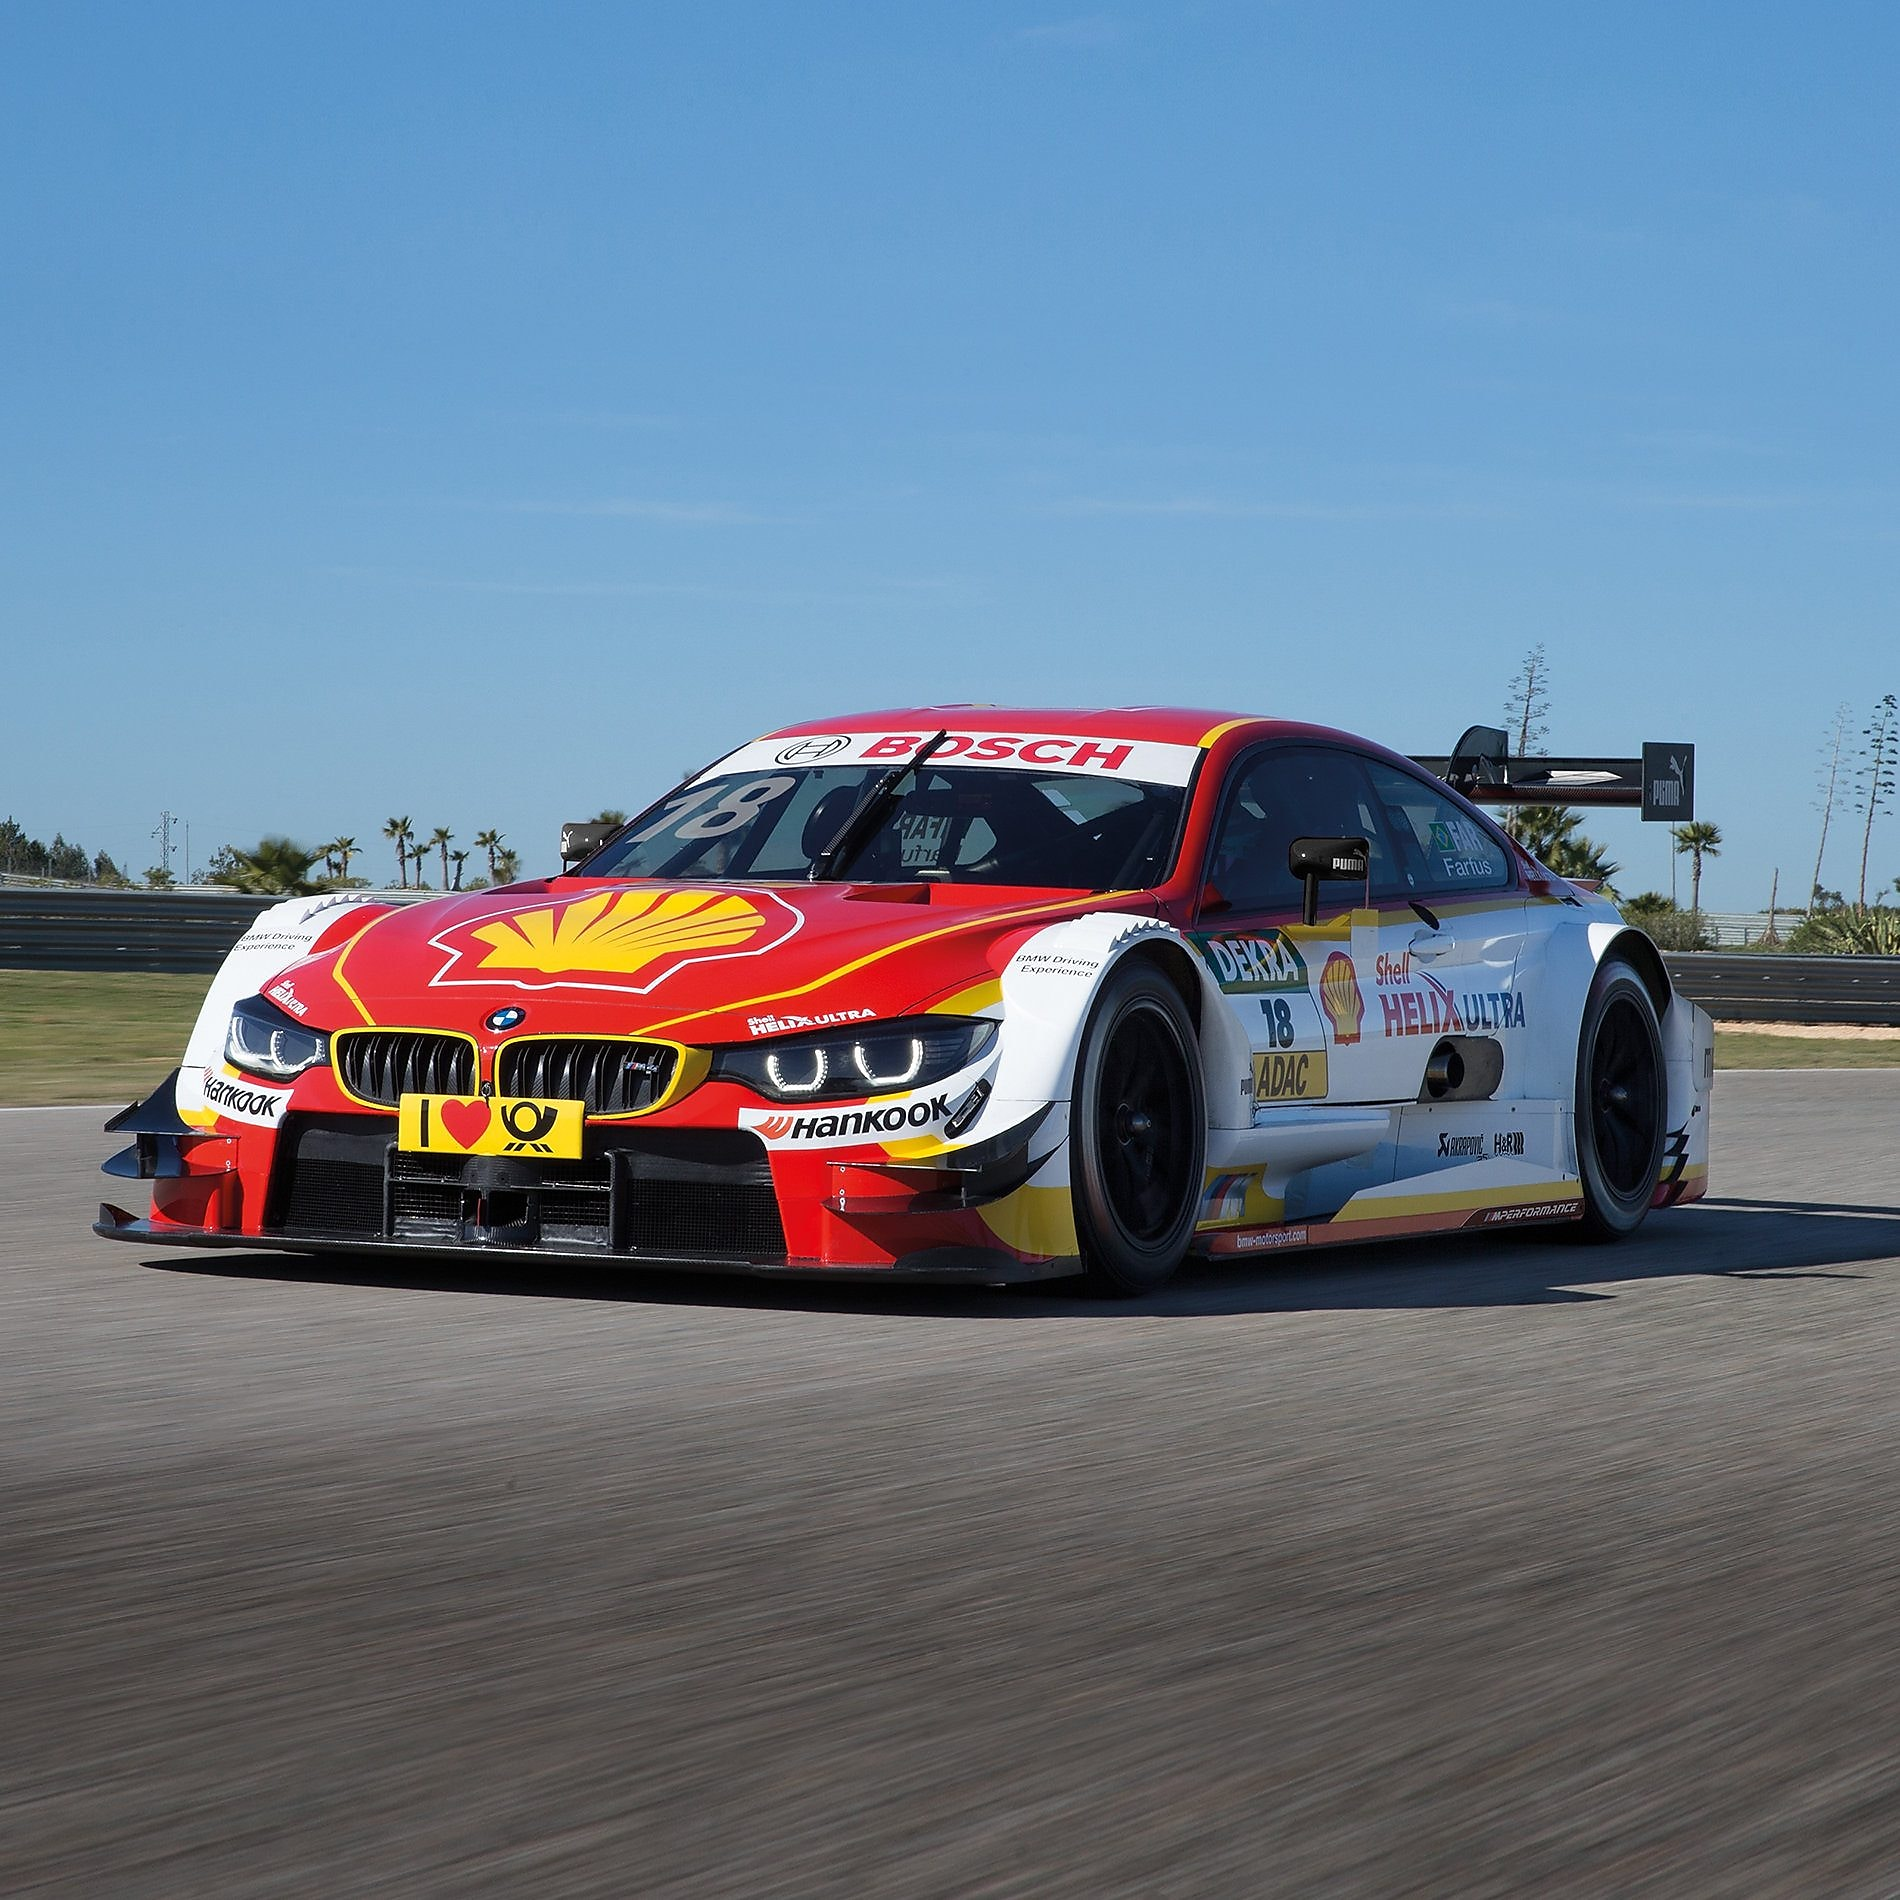 A red and white BMW race car sits on the track, exemplifying the Shell Helix Ultra and BMW's Premium Technology Partnership